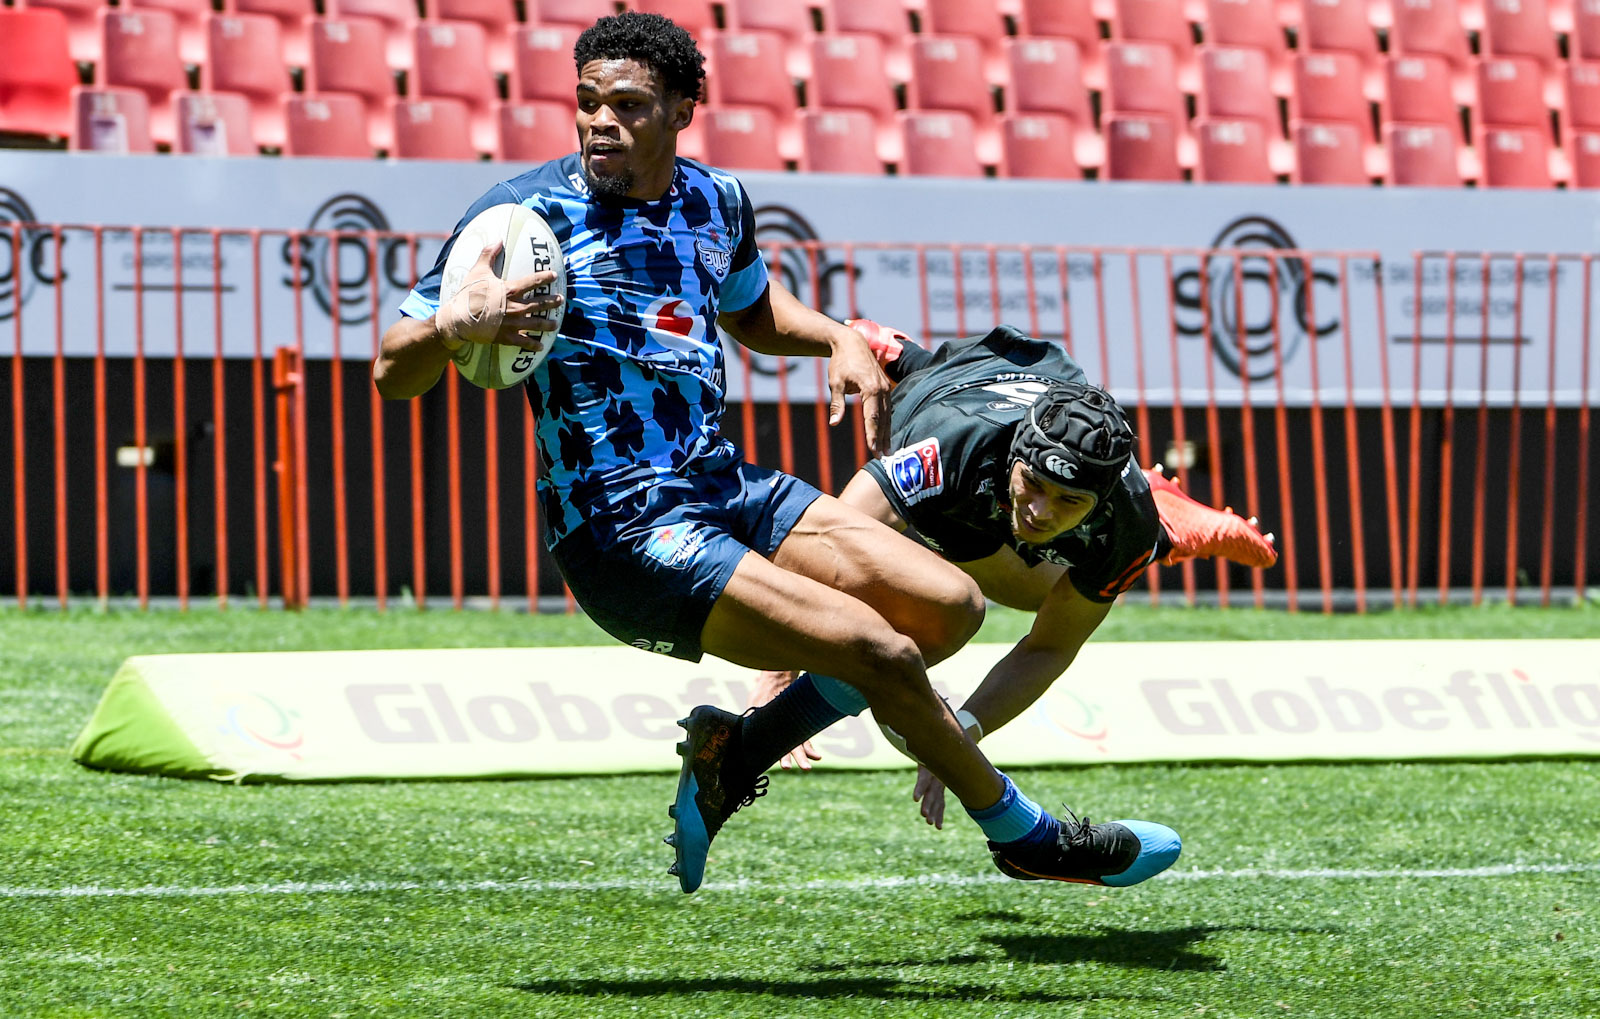 Mammoth effort by Vodacom Blue Bulls U21 against the Cell C Sharks U21 secures spot in final